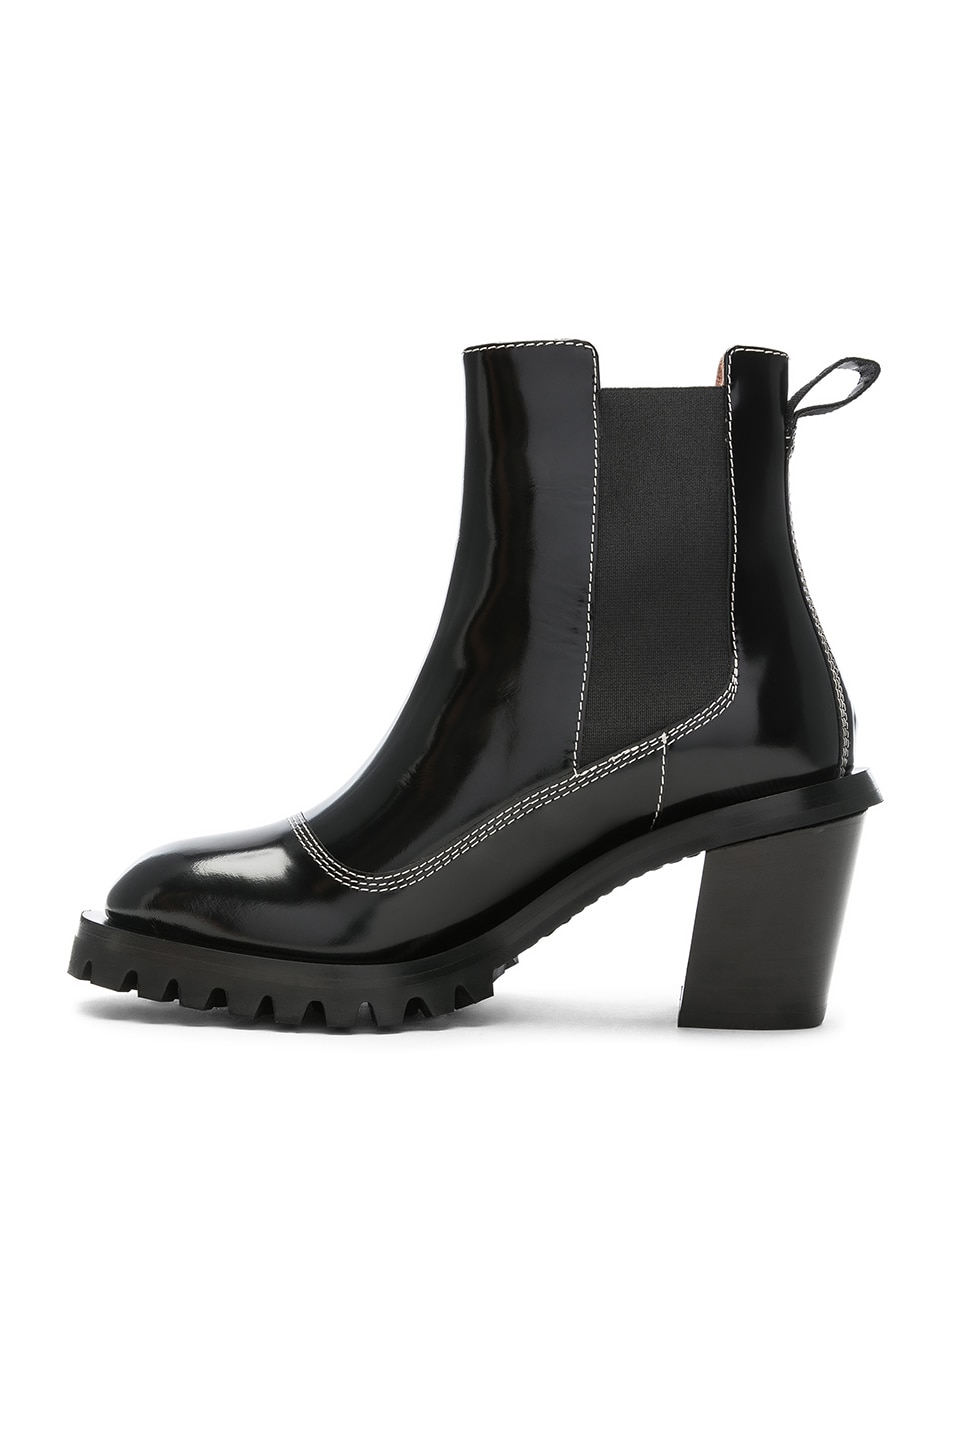 Image 5 of Acne Studios Leather Heeled Boots in Black